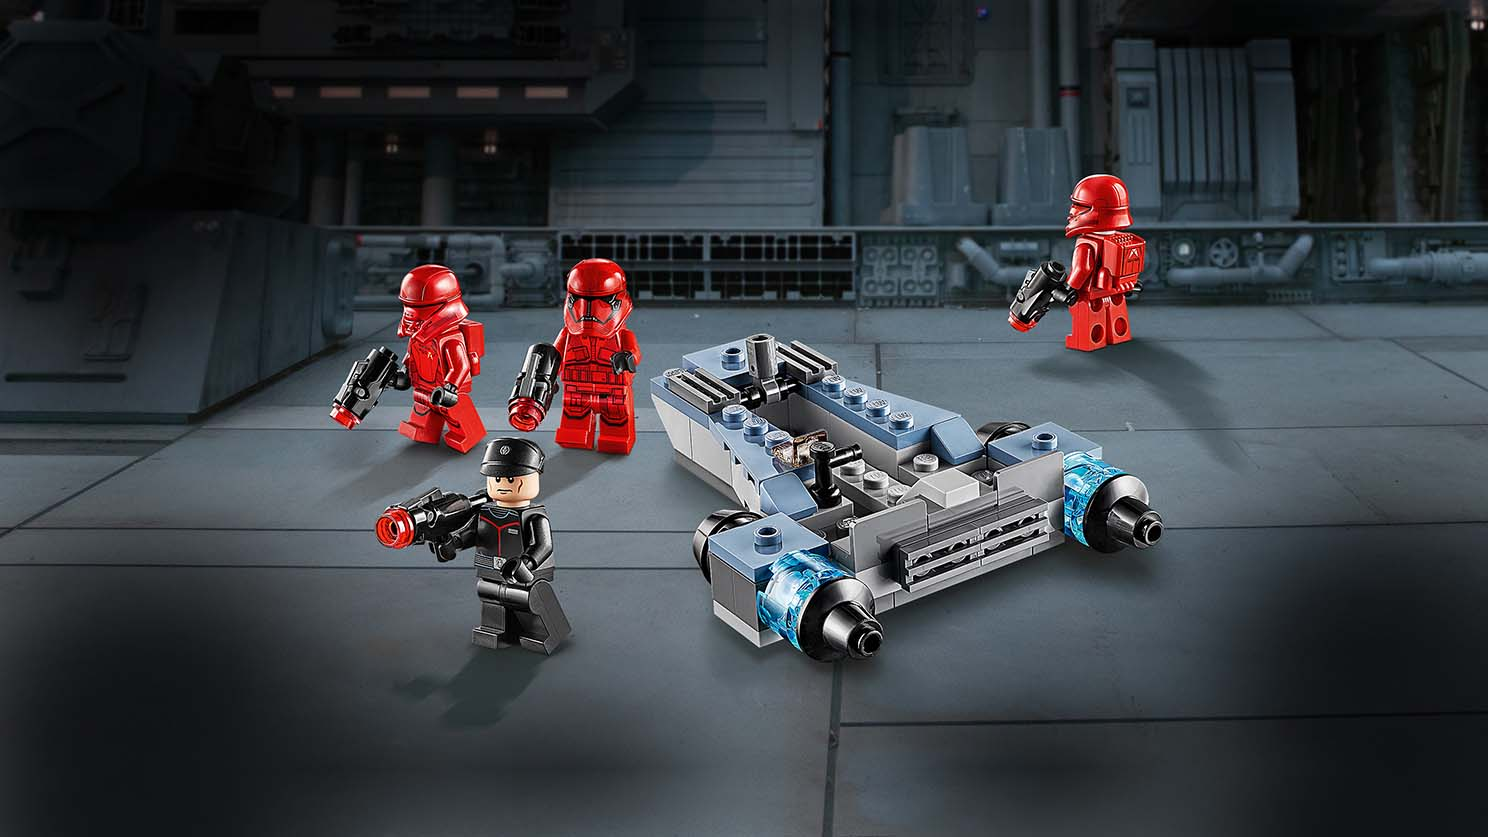 Sith Troopers Battle Pack 75266 Lego Star Wars Sets Lego Com For Kids Gb The chinese new year begins on 25th january and once again lego is releasing a cute rendition of the year's zodiac animal, which this year is 40355 year of. sith troopers battle pack 75266